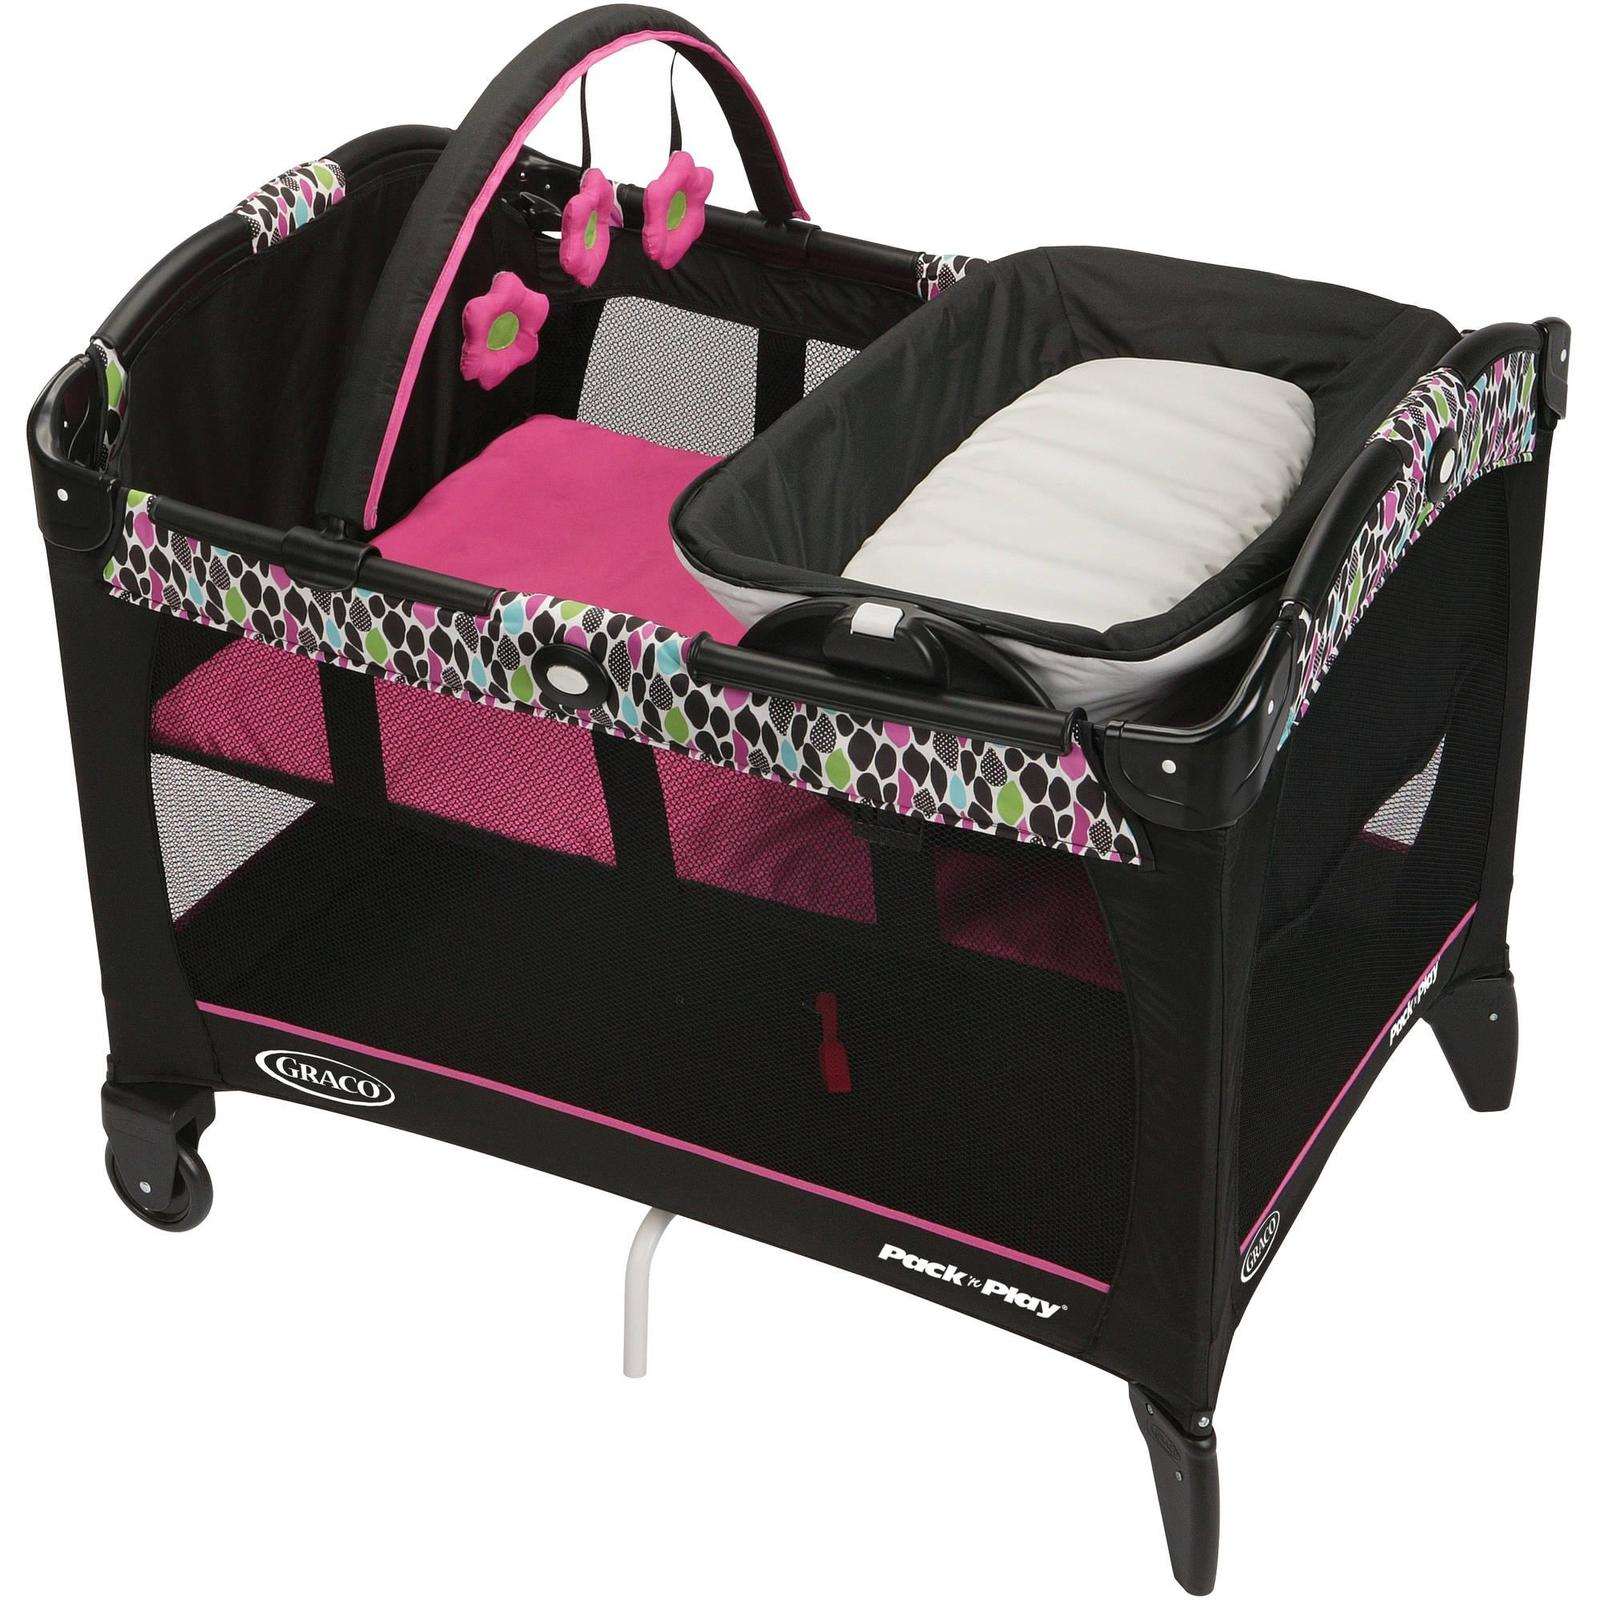 Graco baby portable play yard maci 2